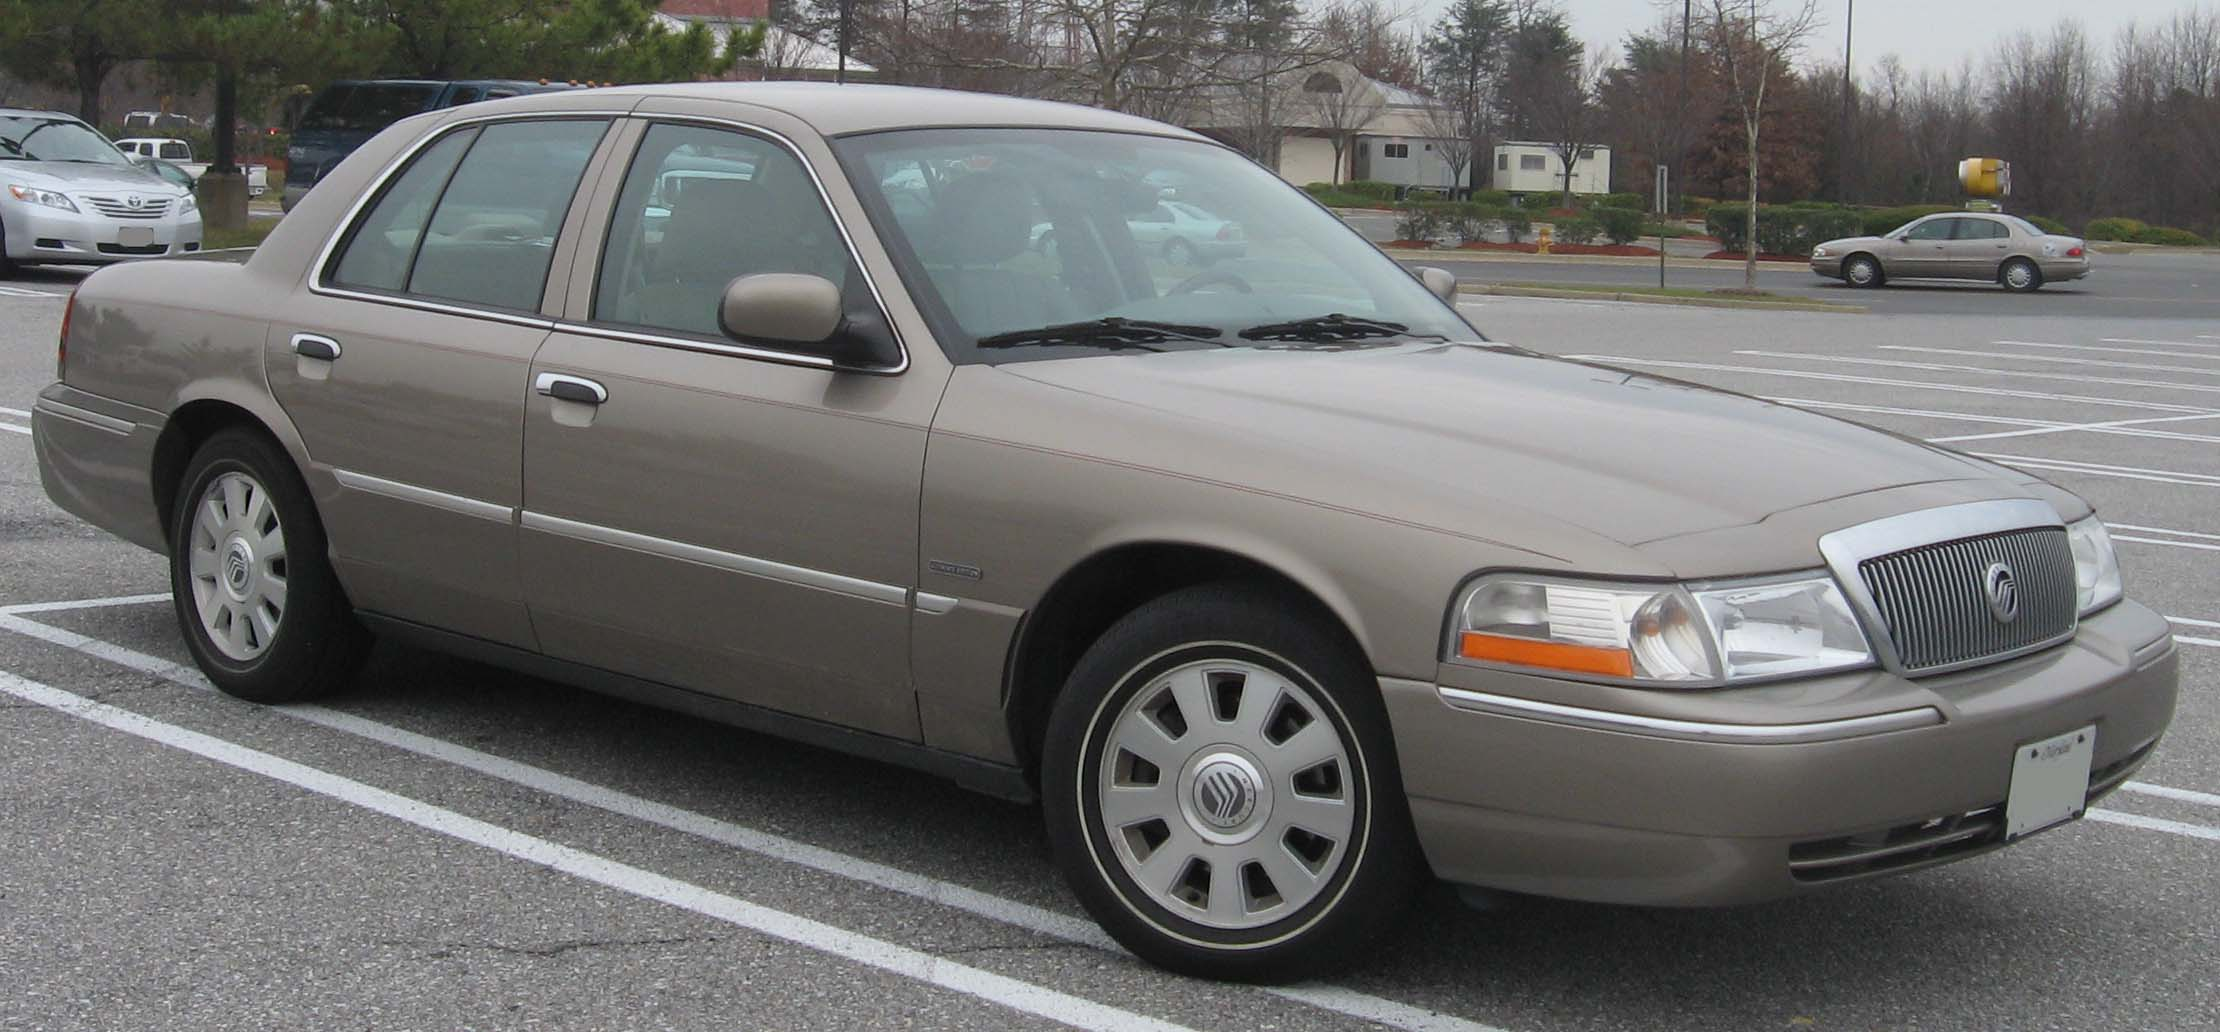 2007 Mercury Grand Marquis #15